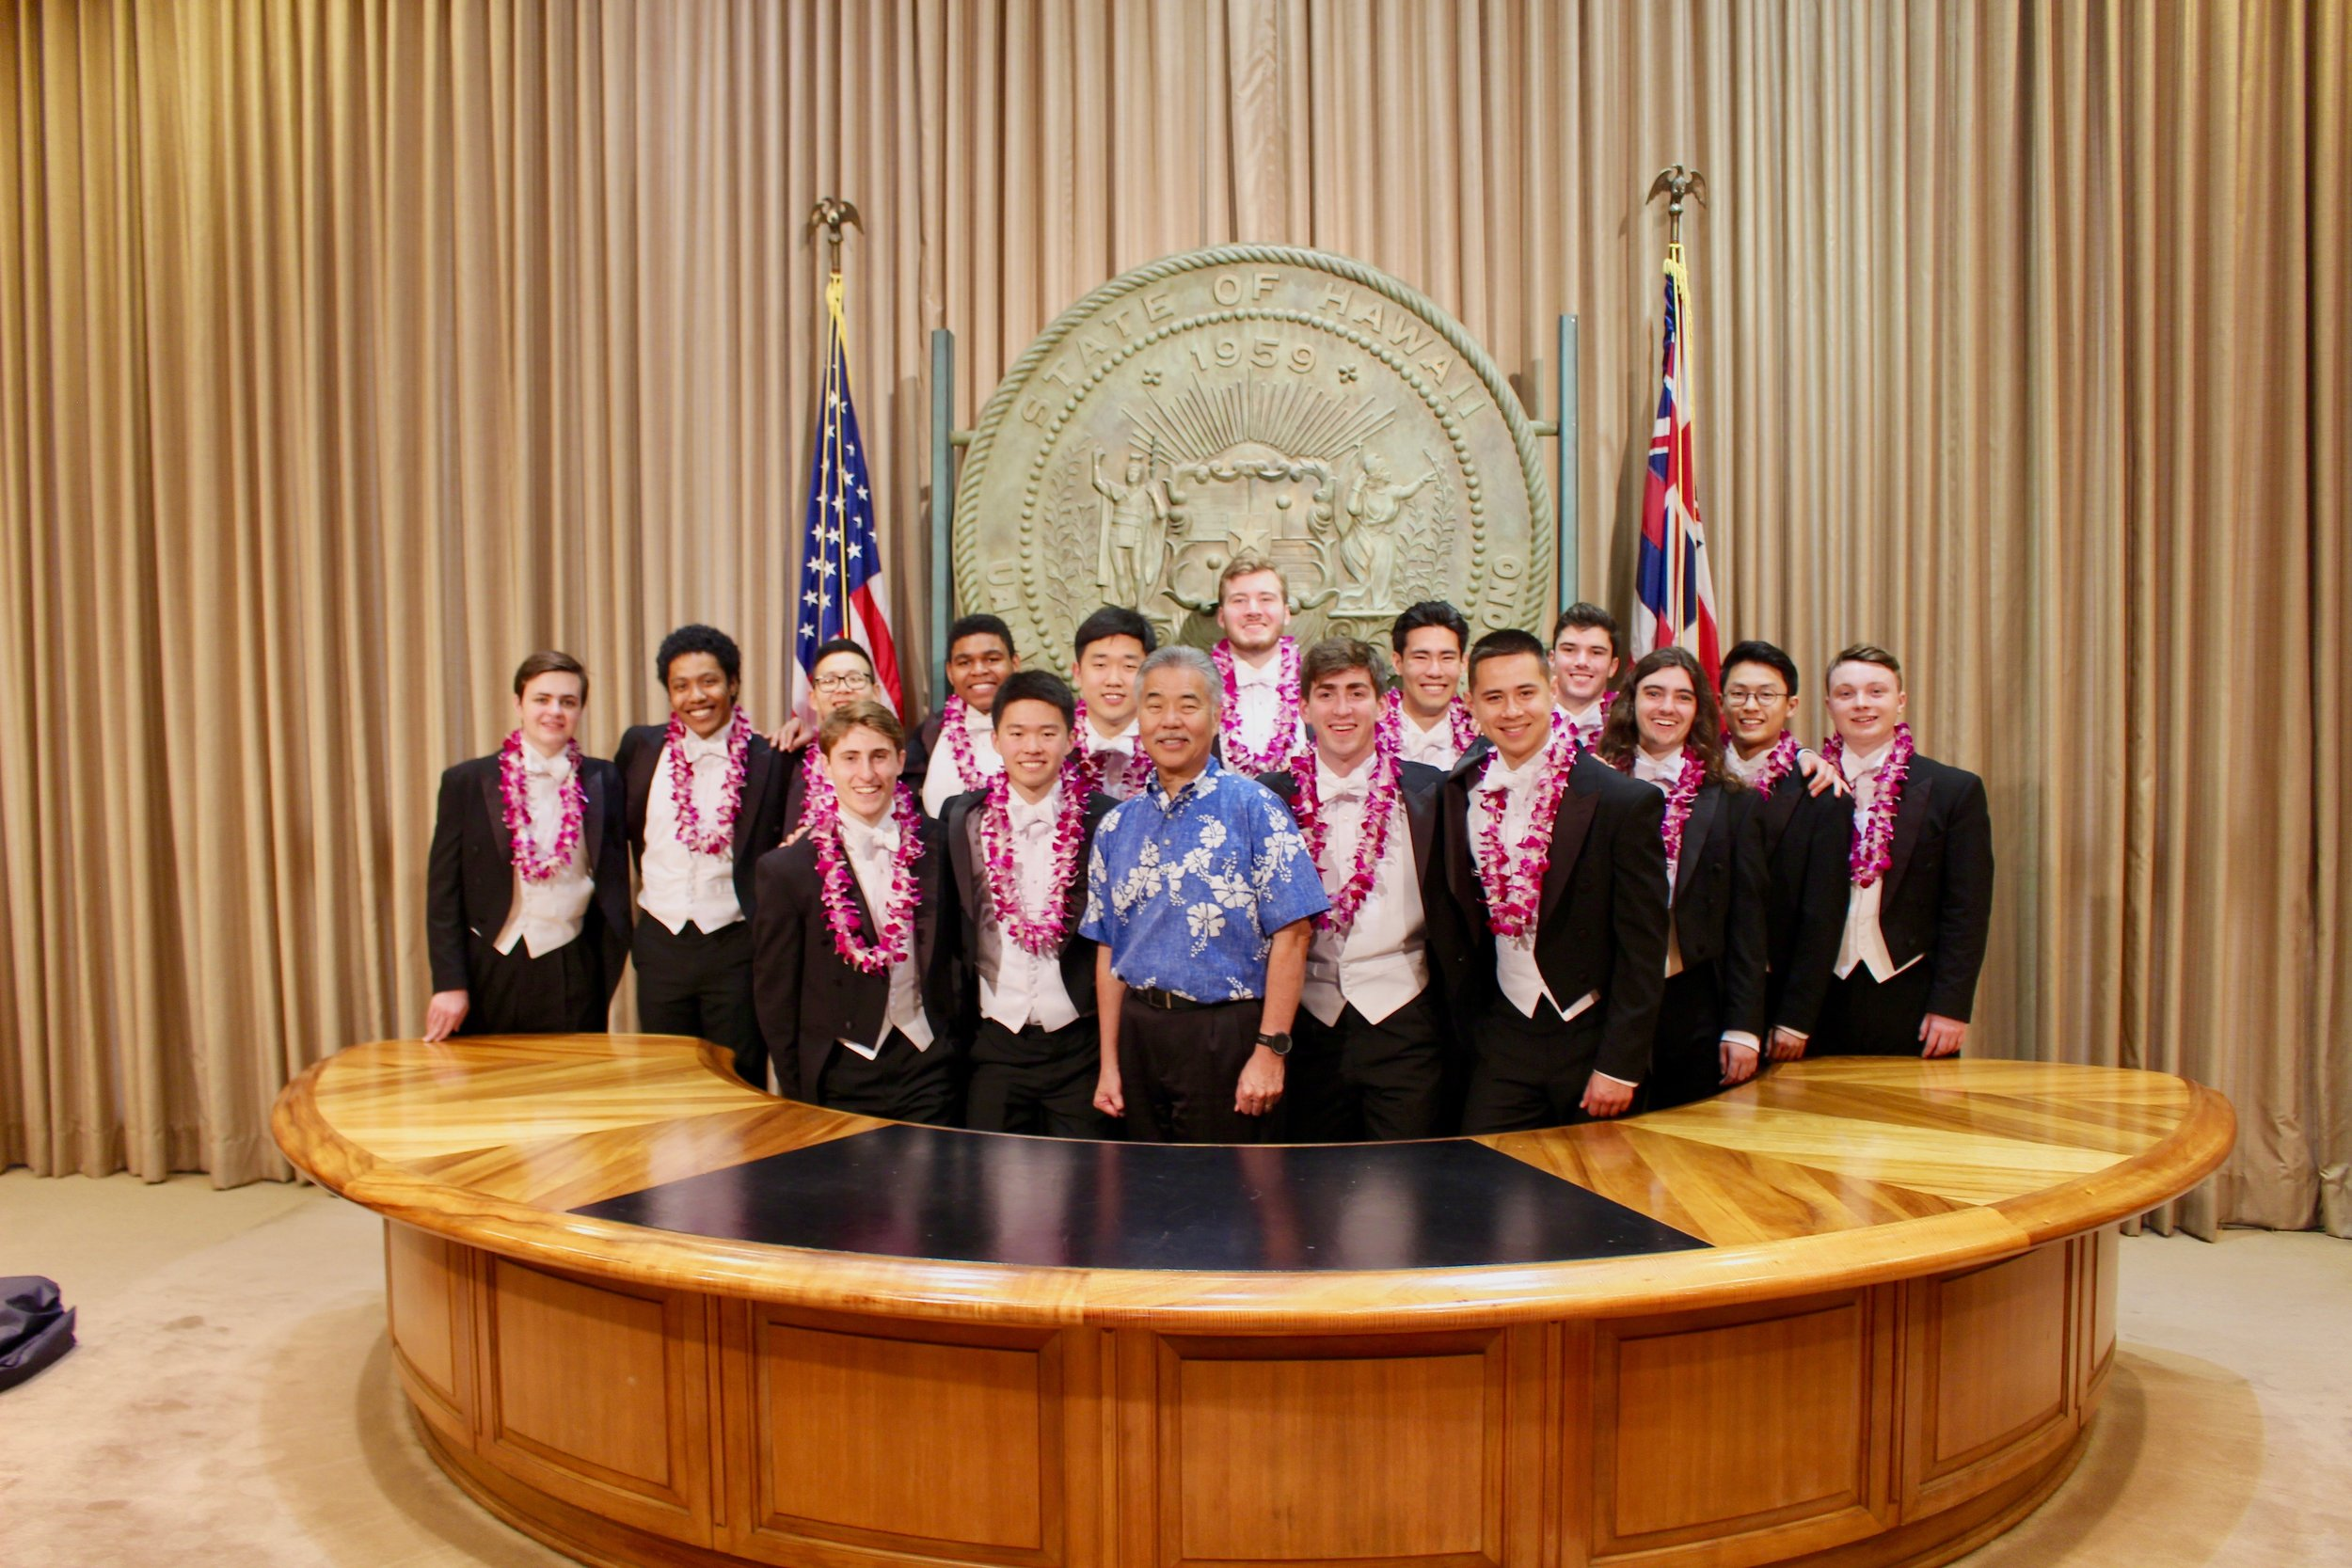 """Performing for the Governor of Hawaii on State """"Yale Alley Cats Day""""!"""